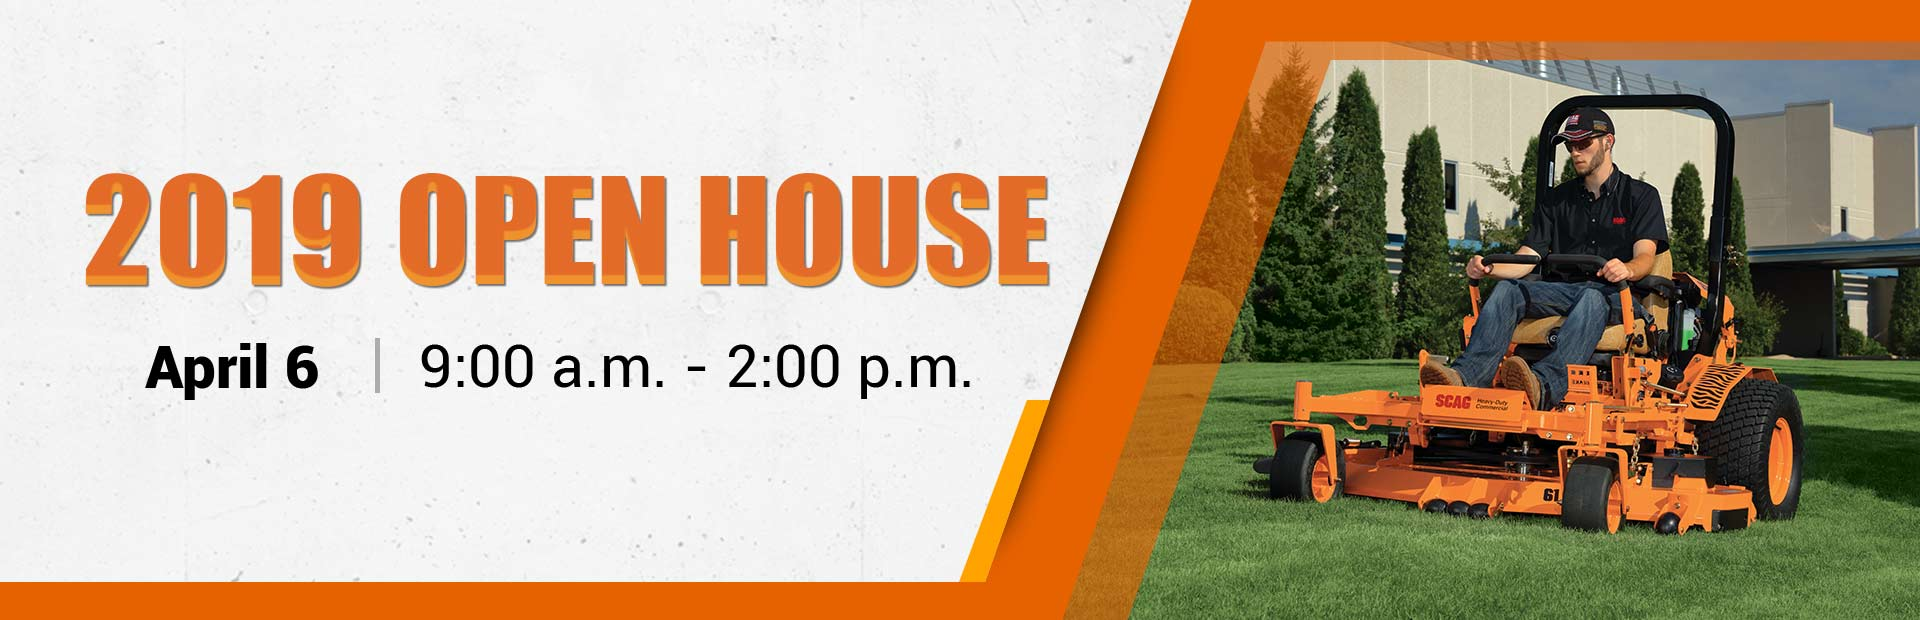 Join us April 6 for our 2019 Open House!